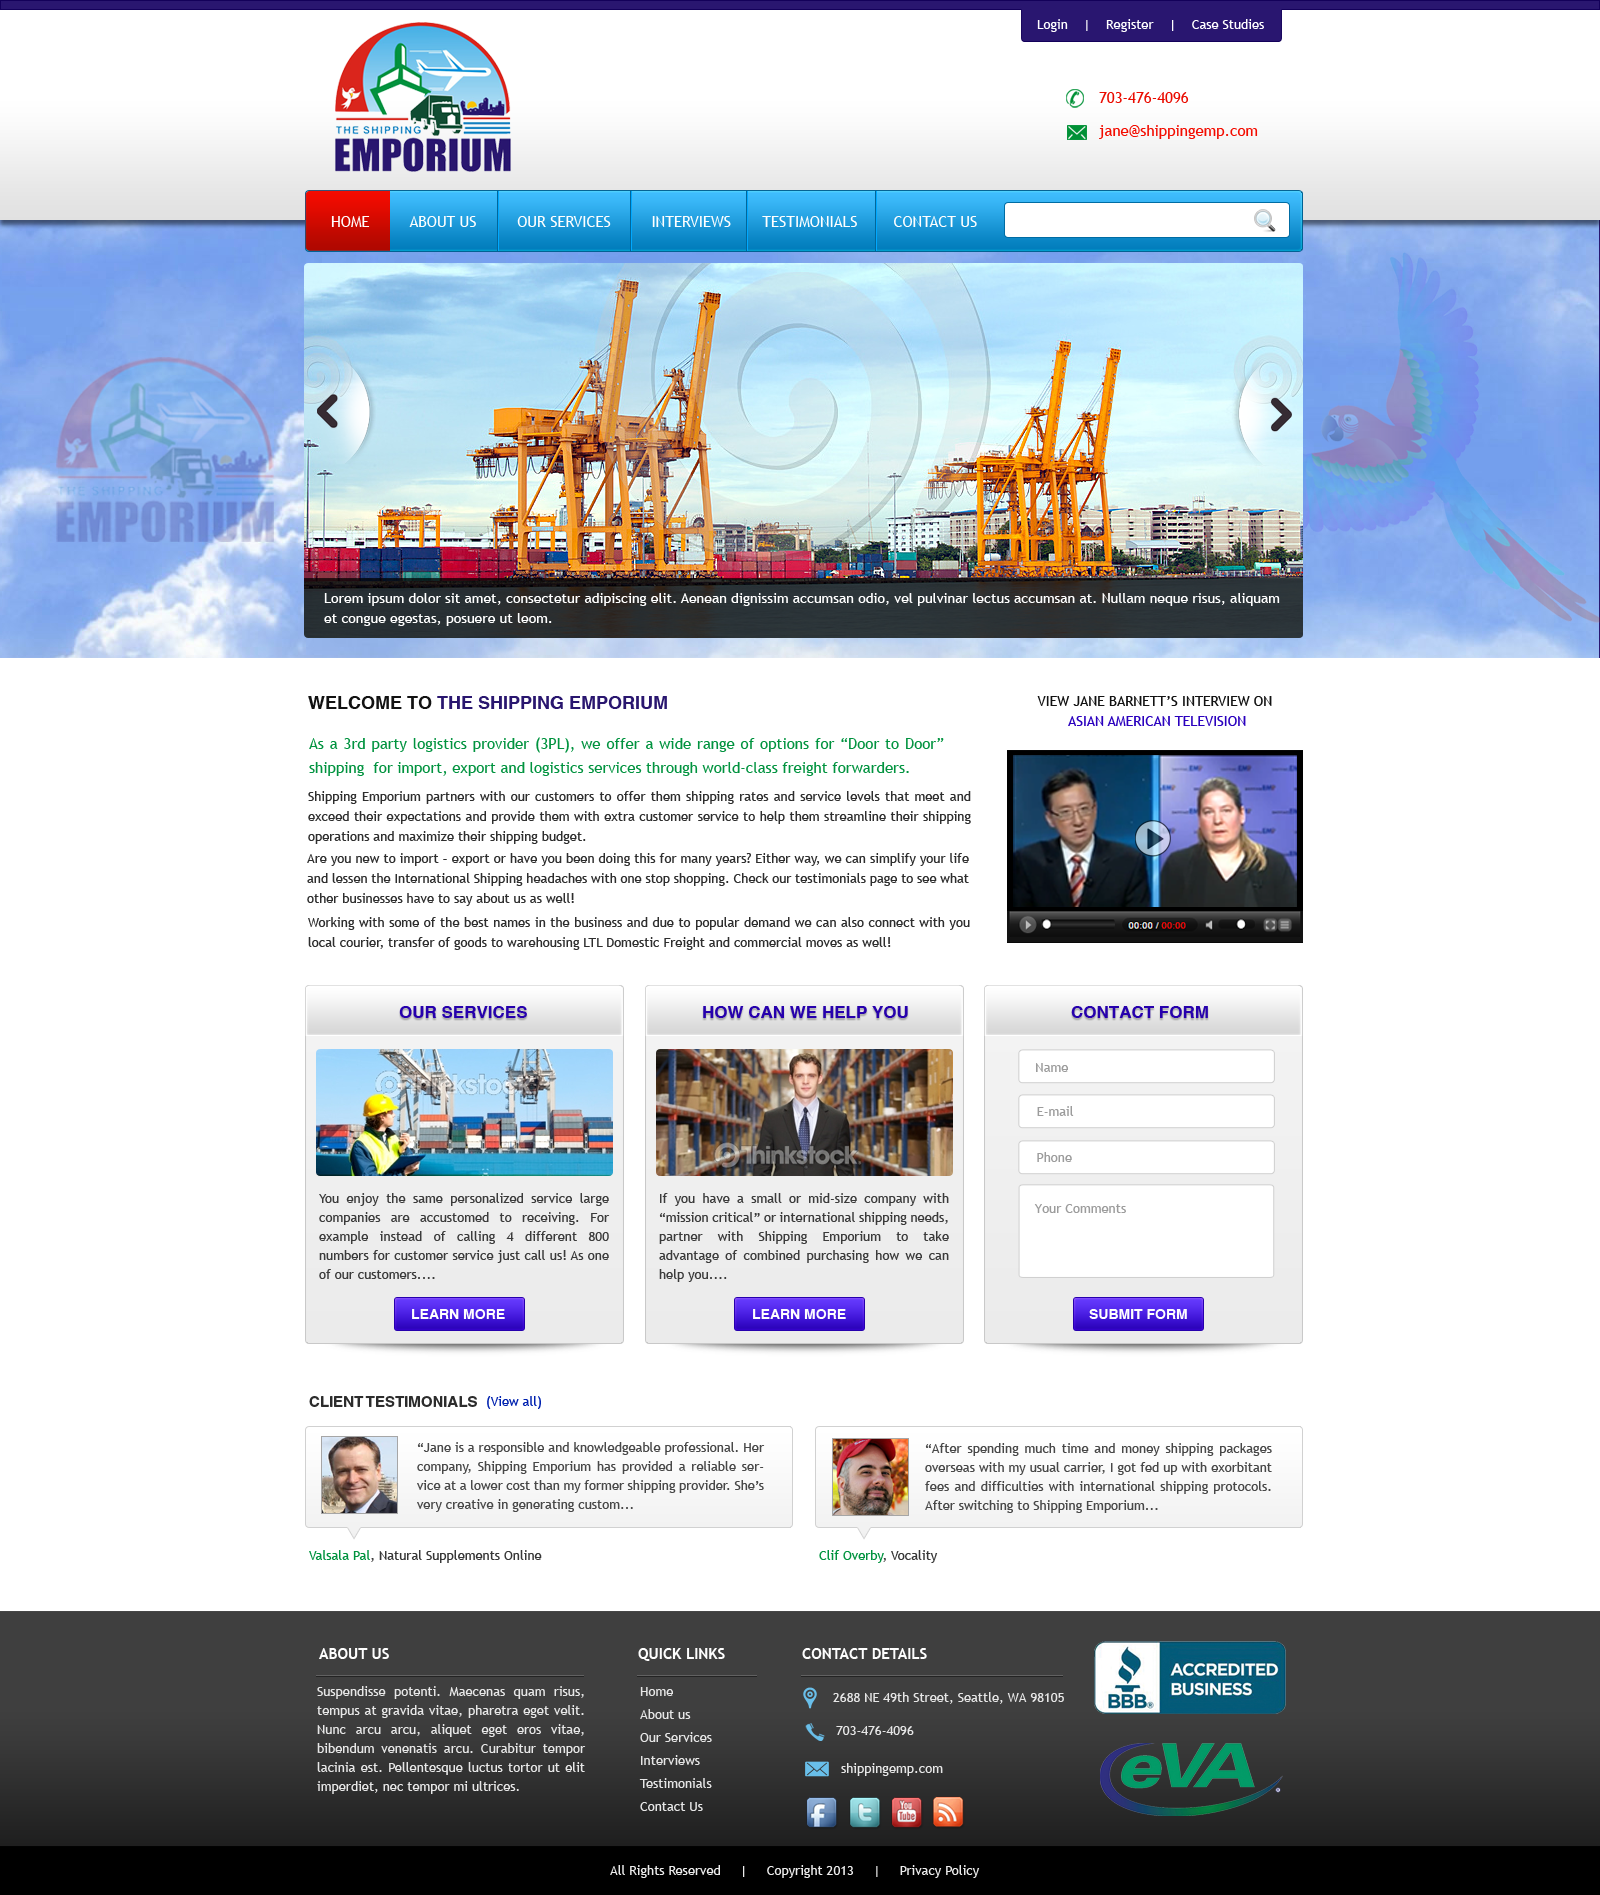 Web Page Design by Vishwa Km - Entry No. 53 in the Web Page Design Contest Artistic Web Page Design for The Shipping Emporium Website.